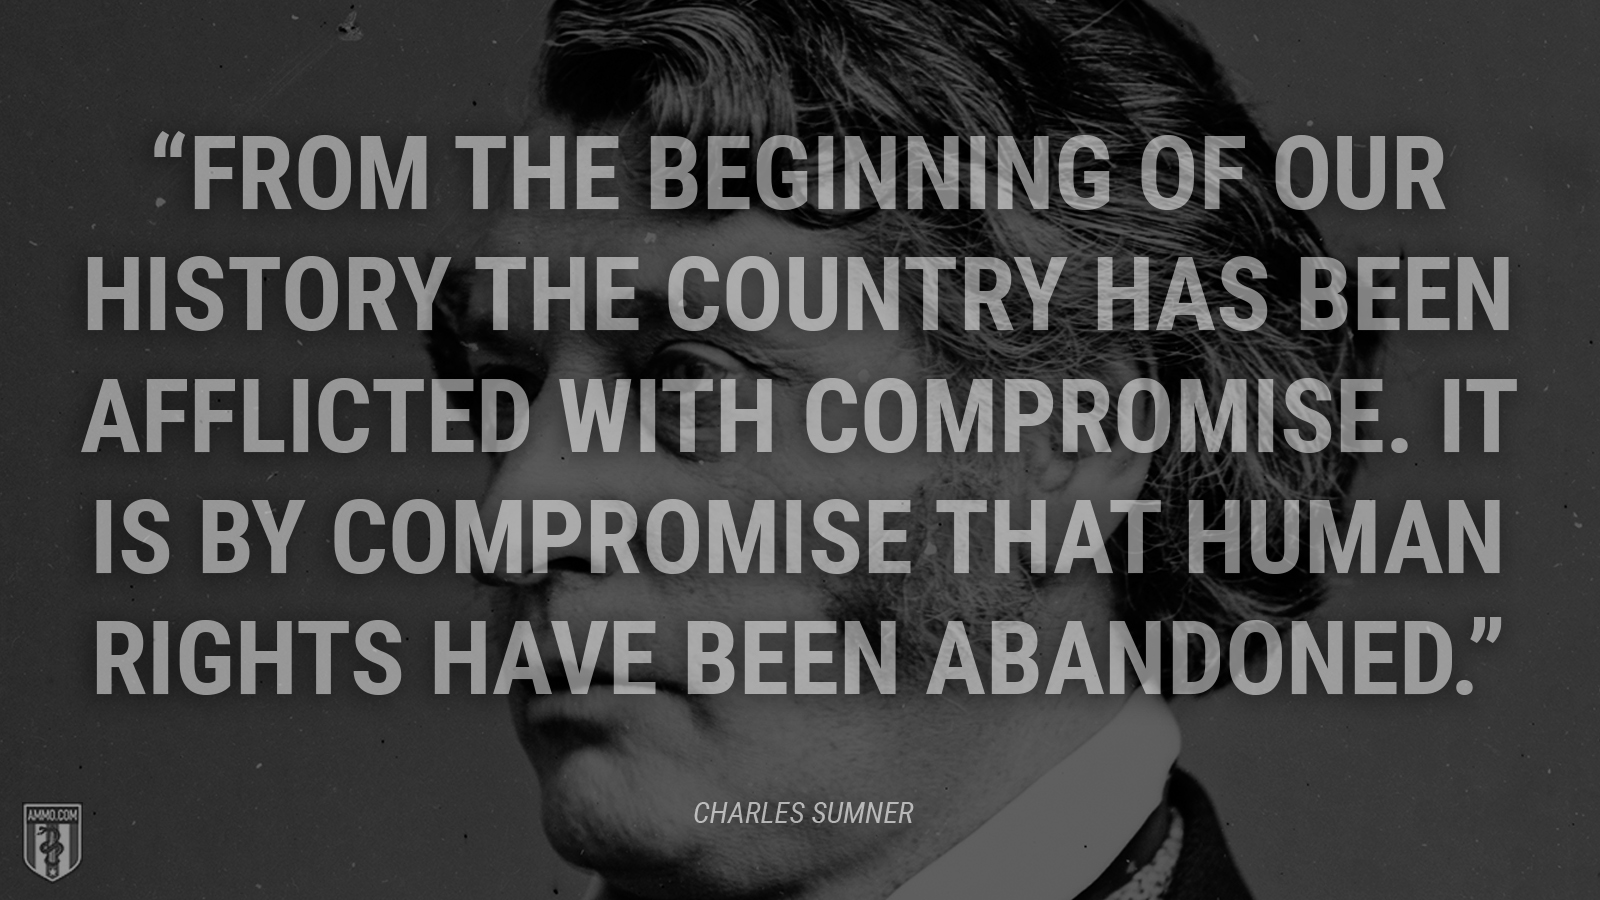 """From the beginning of our history the country has been afflicted with compromise. It is by compromise that human rights have been abandoned."" - Charles Sumner"